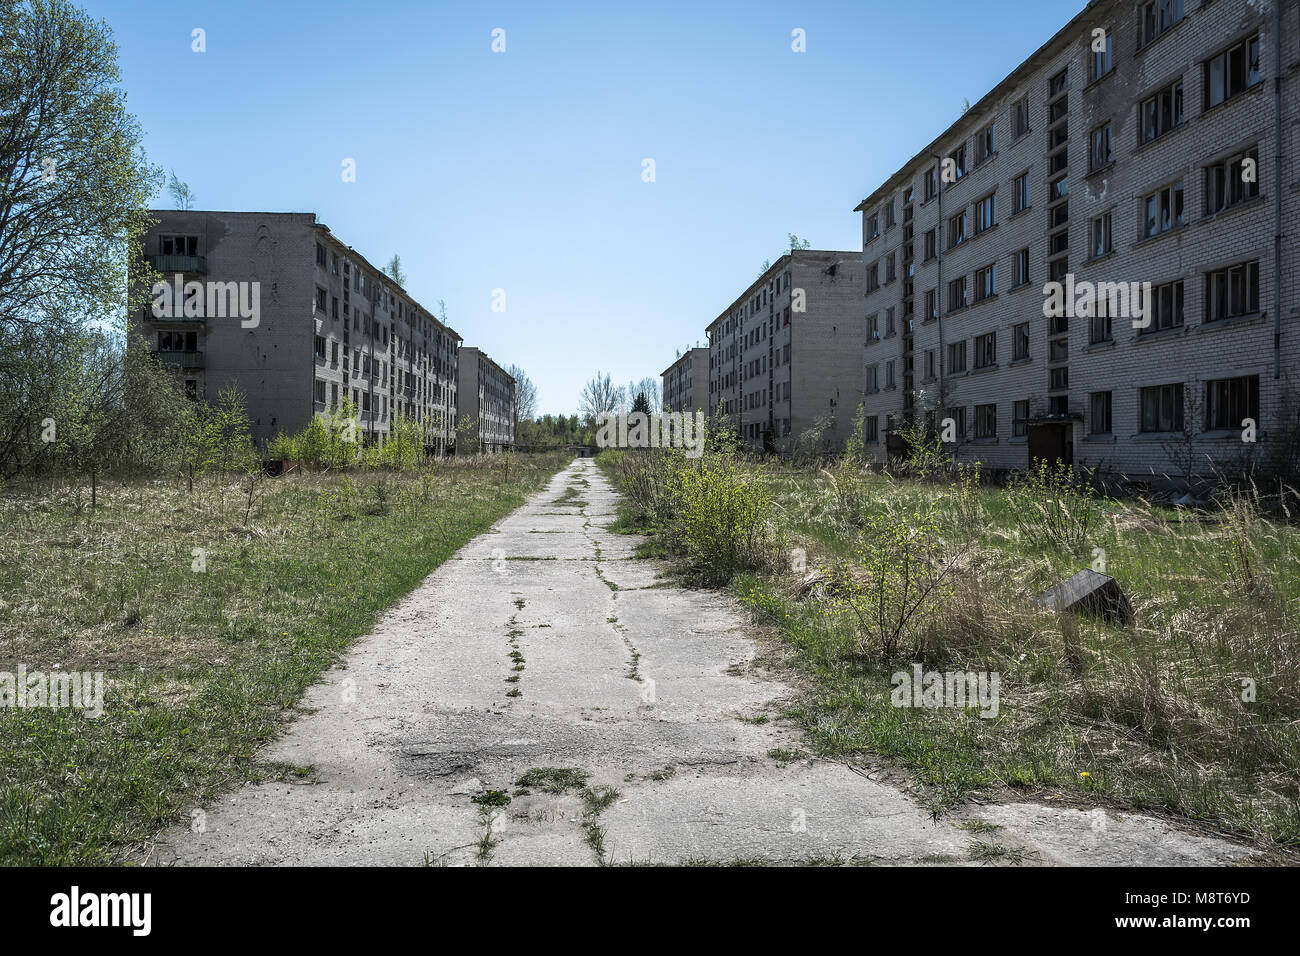 Abandoned soviet apartment blocks in Skrunda, Latvia. Former dormitory district in the soviet military base in Skrunda - Stock Image